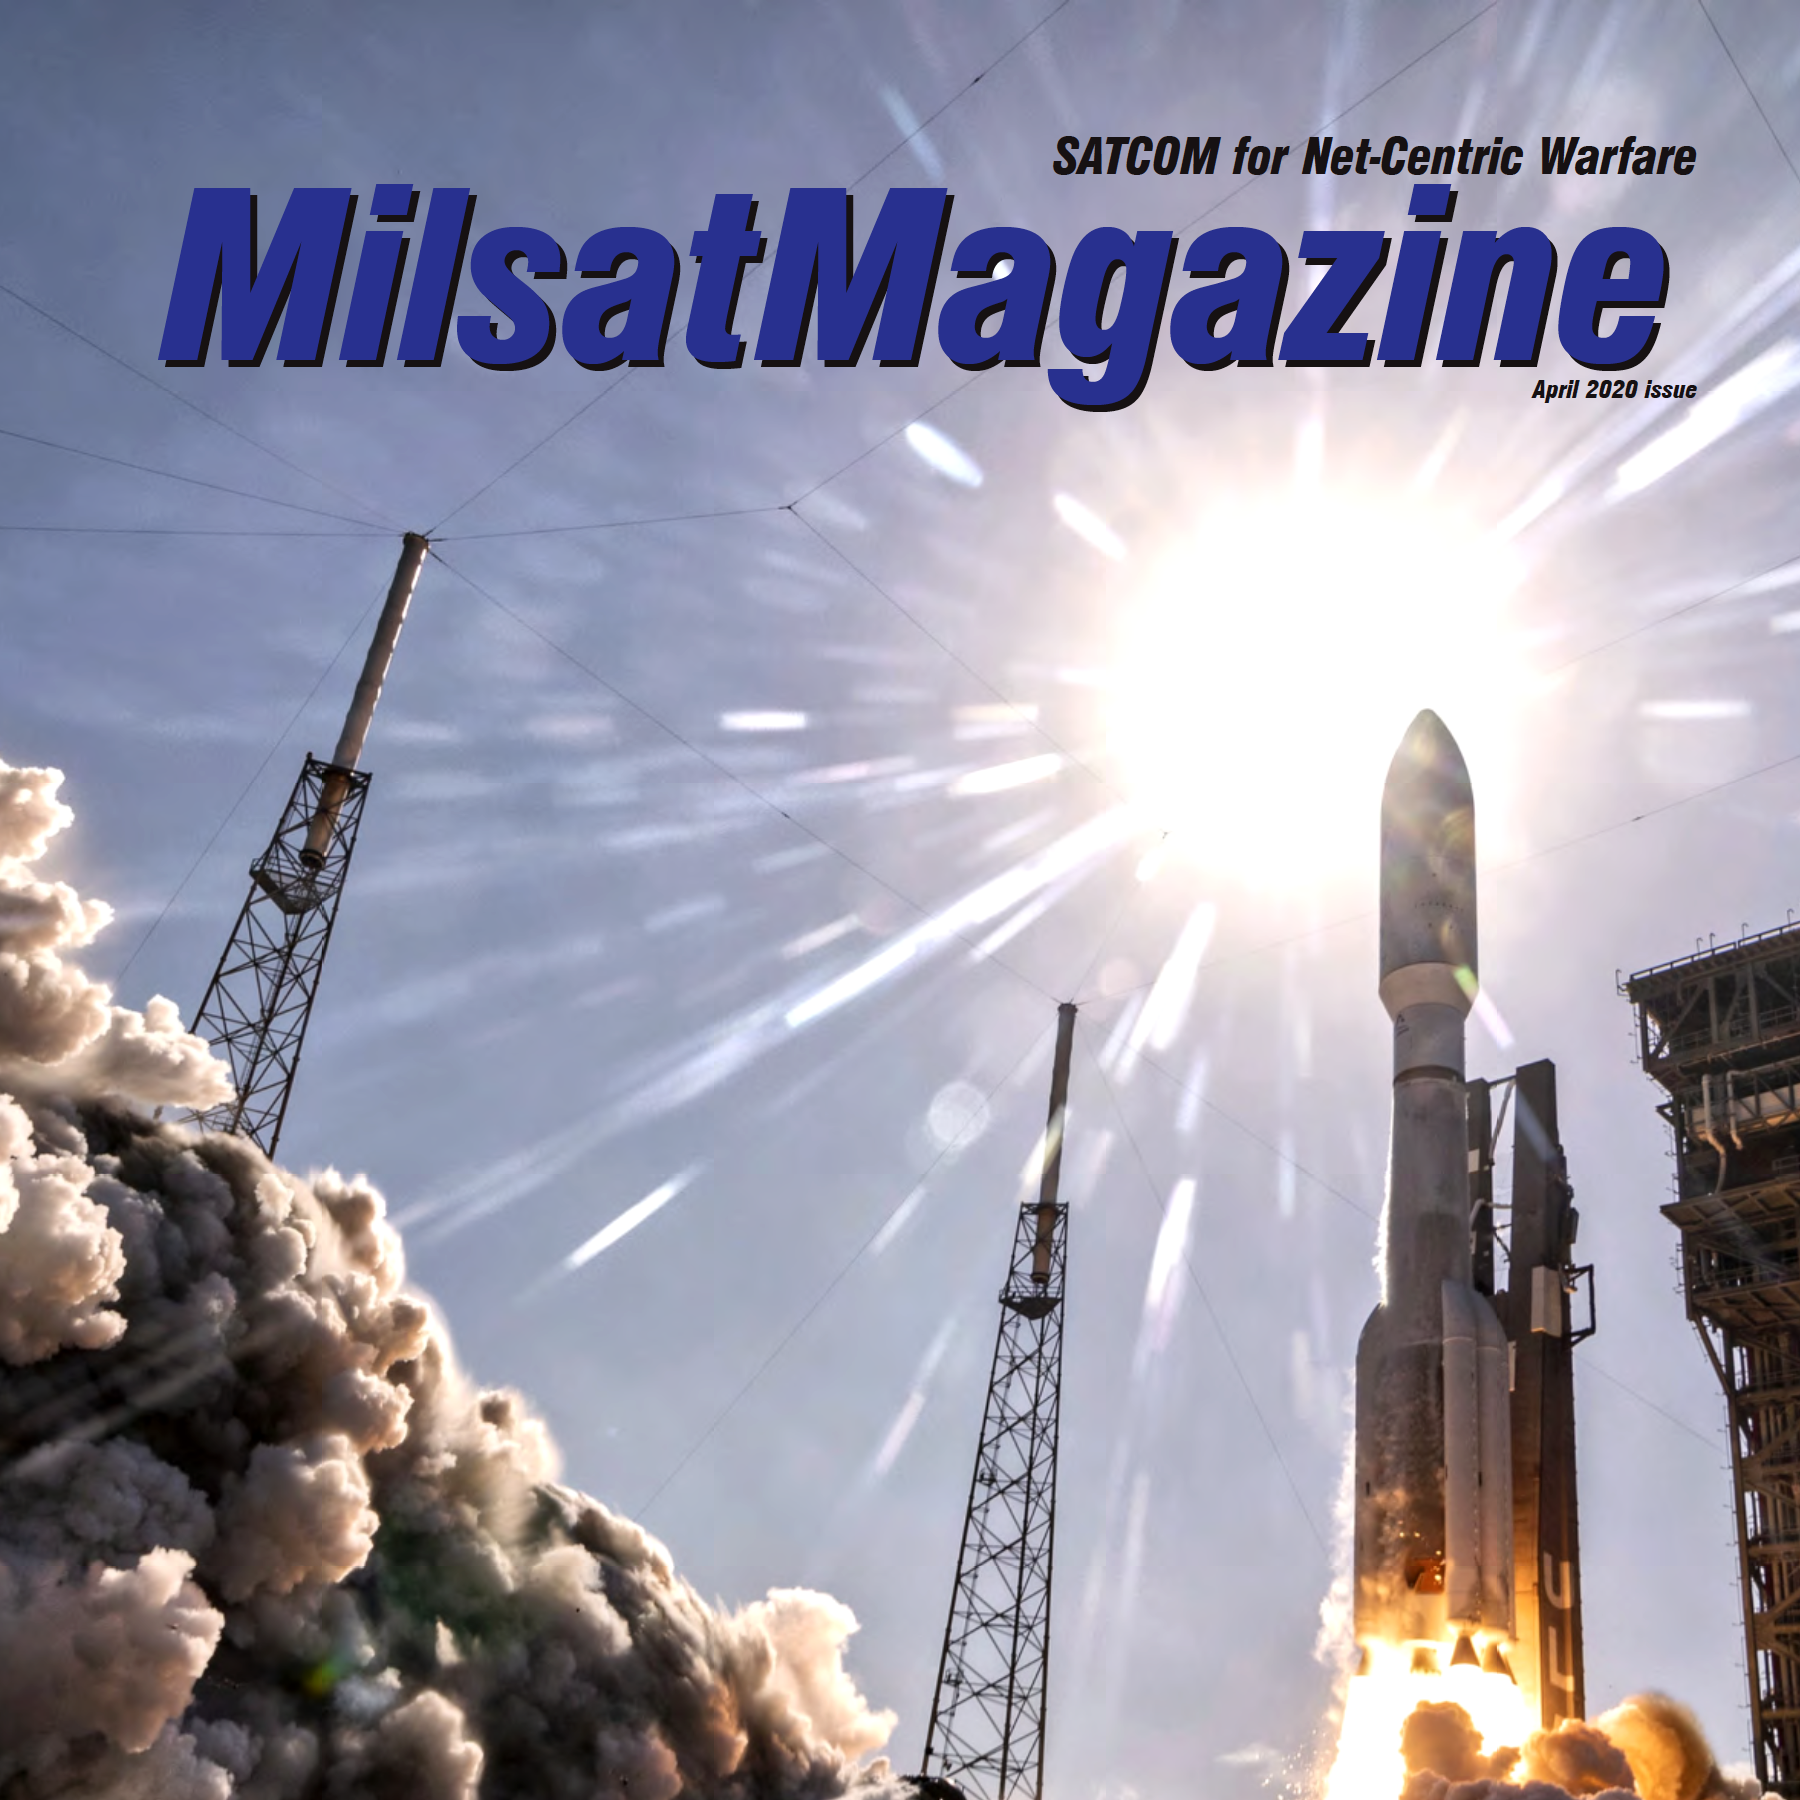 Mailsat Magazaine, April 2020, featuring Horizon Technologies CEO John Beckner